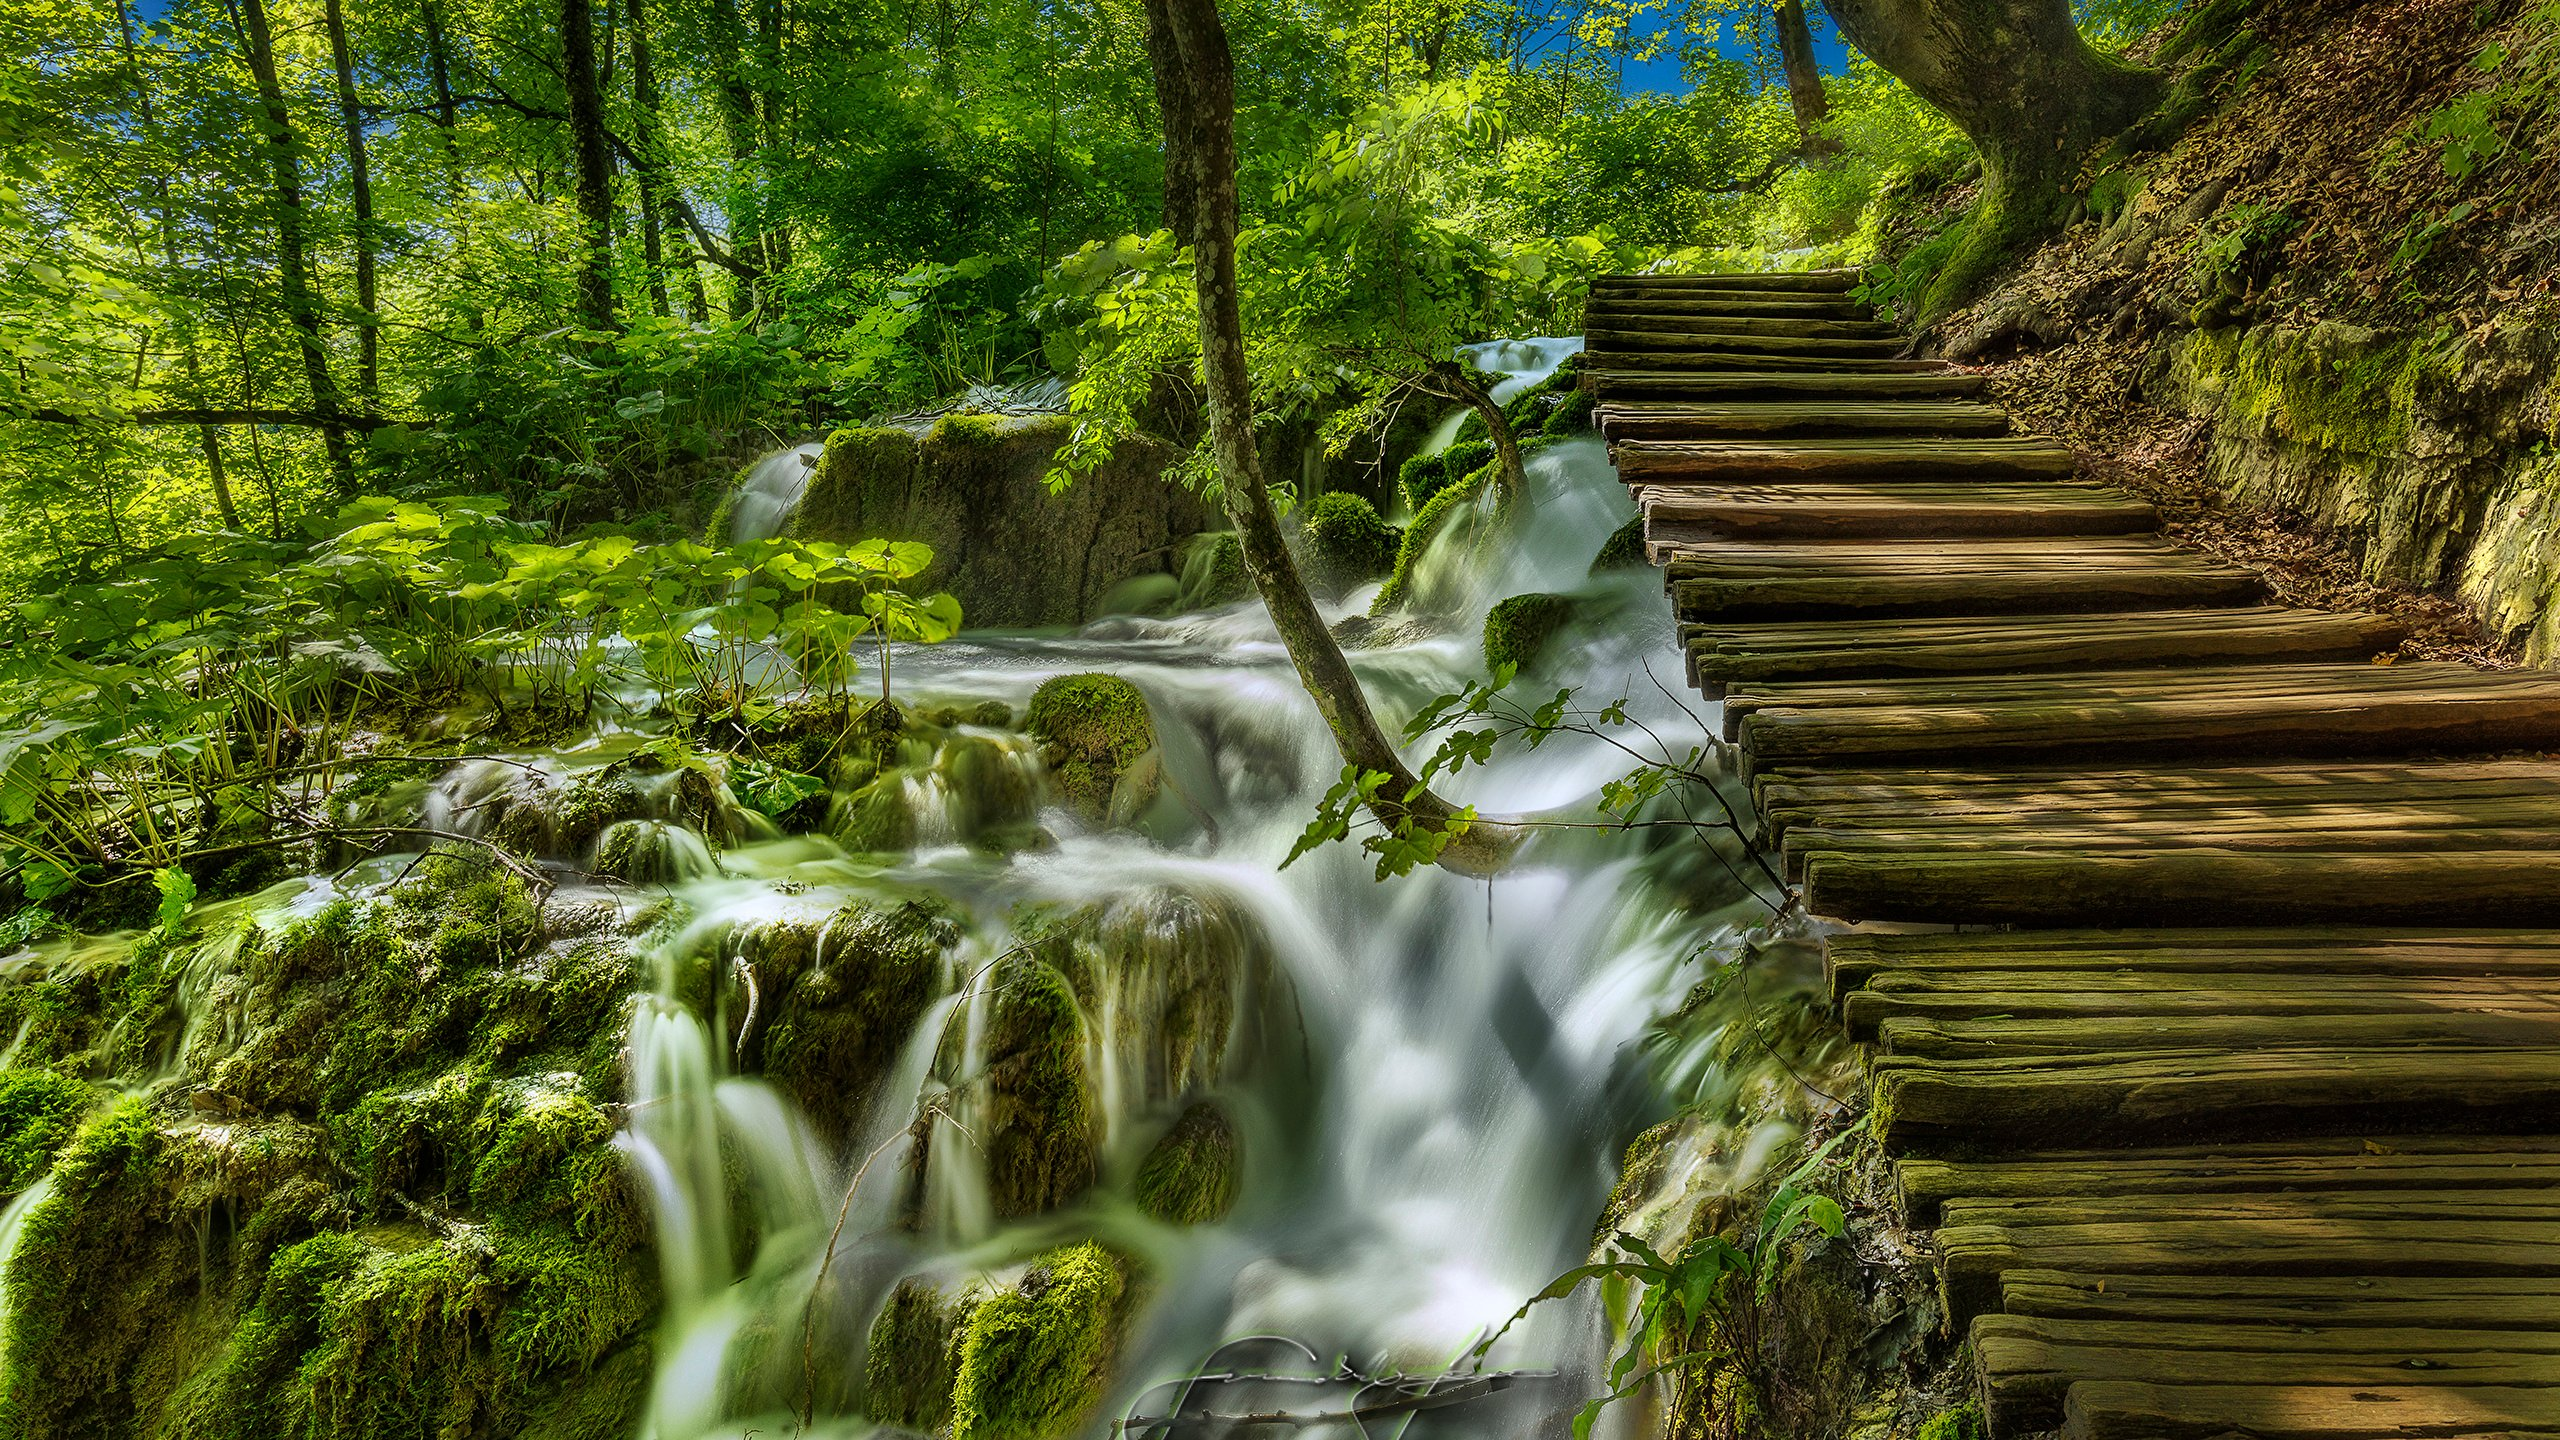 Photo Croatia Plitvice Lakes National Park Nature Bridges 2560x1440 2560x1440